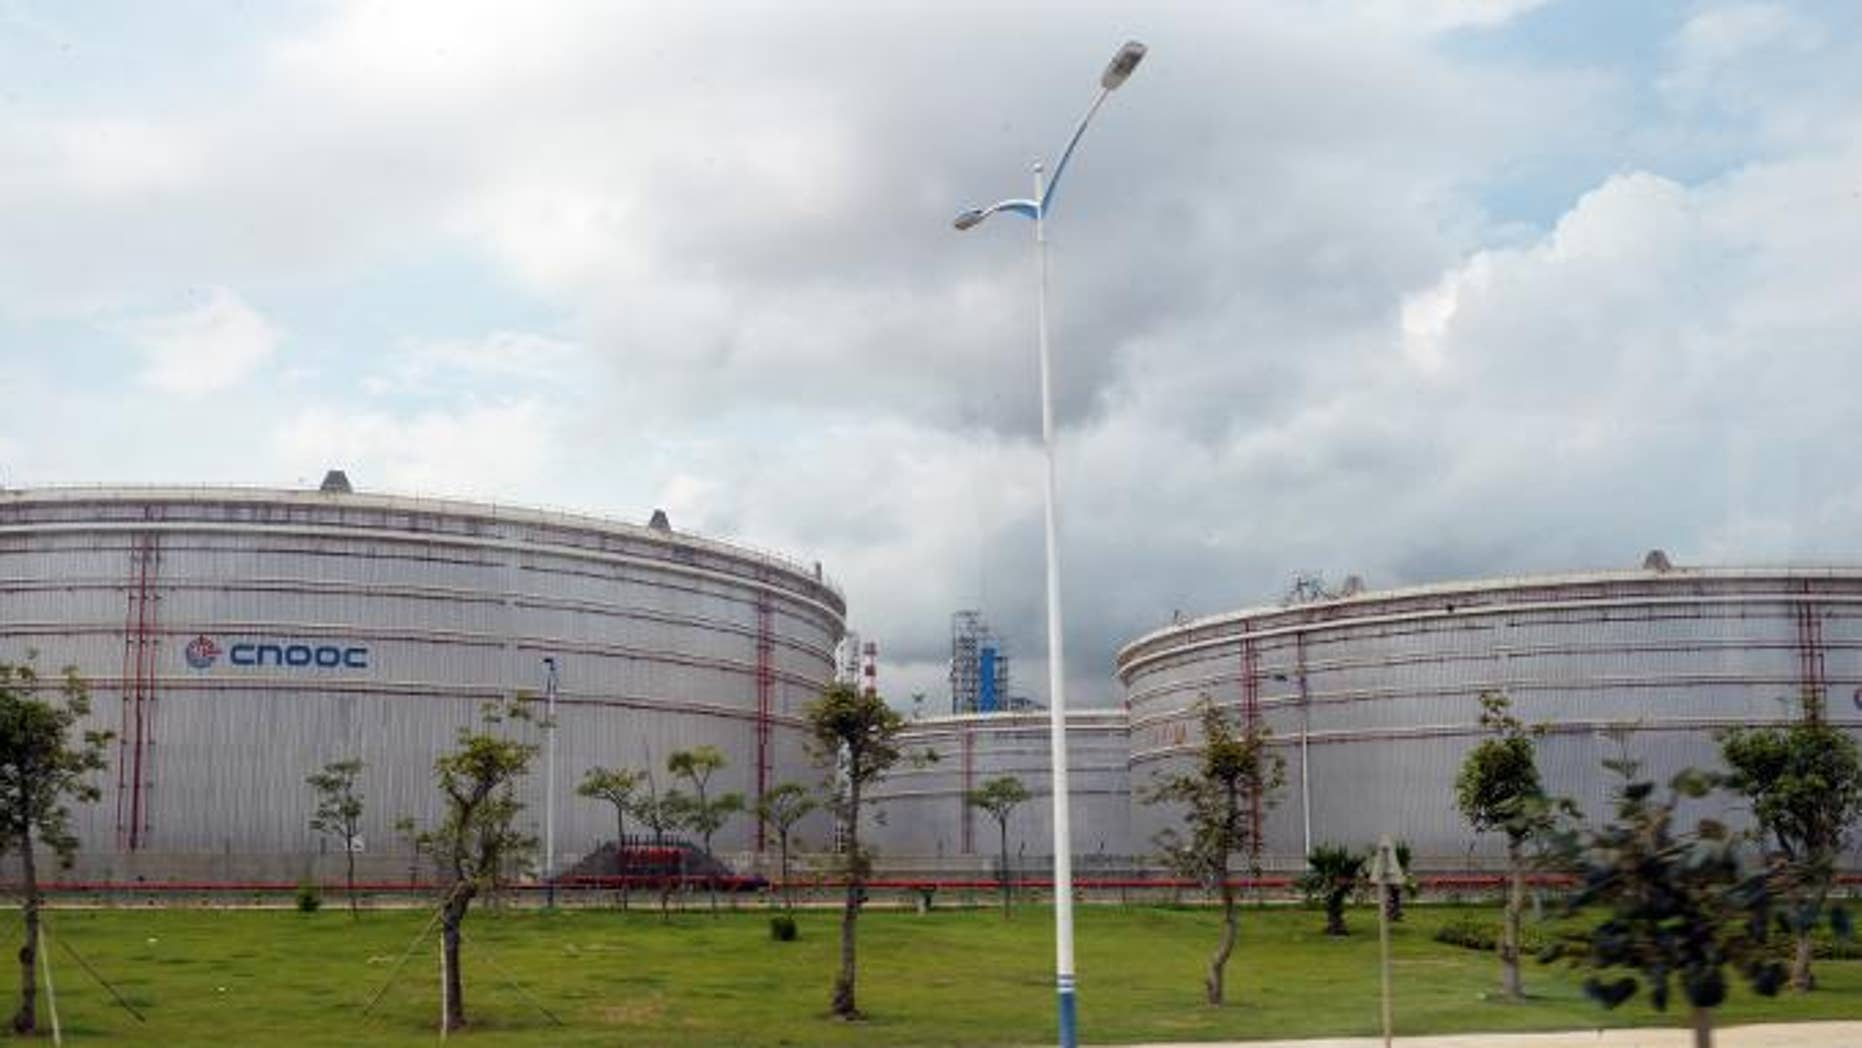 China's state-owned CNOOC has secured a $2-billion deal to develop a petroleum field in Uganda and help propel the east African nation into the club of oil-producing countries, an official said.